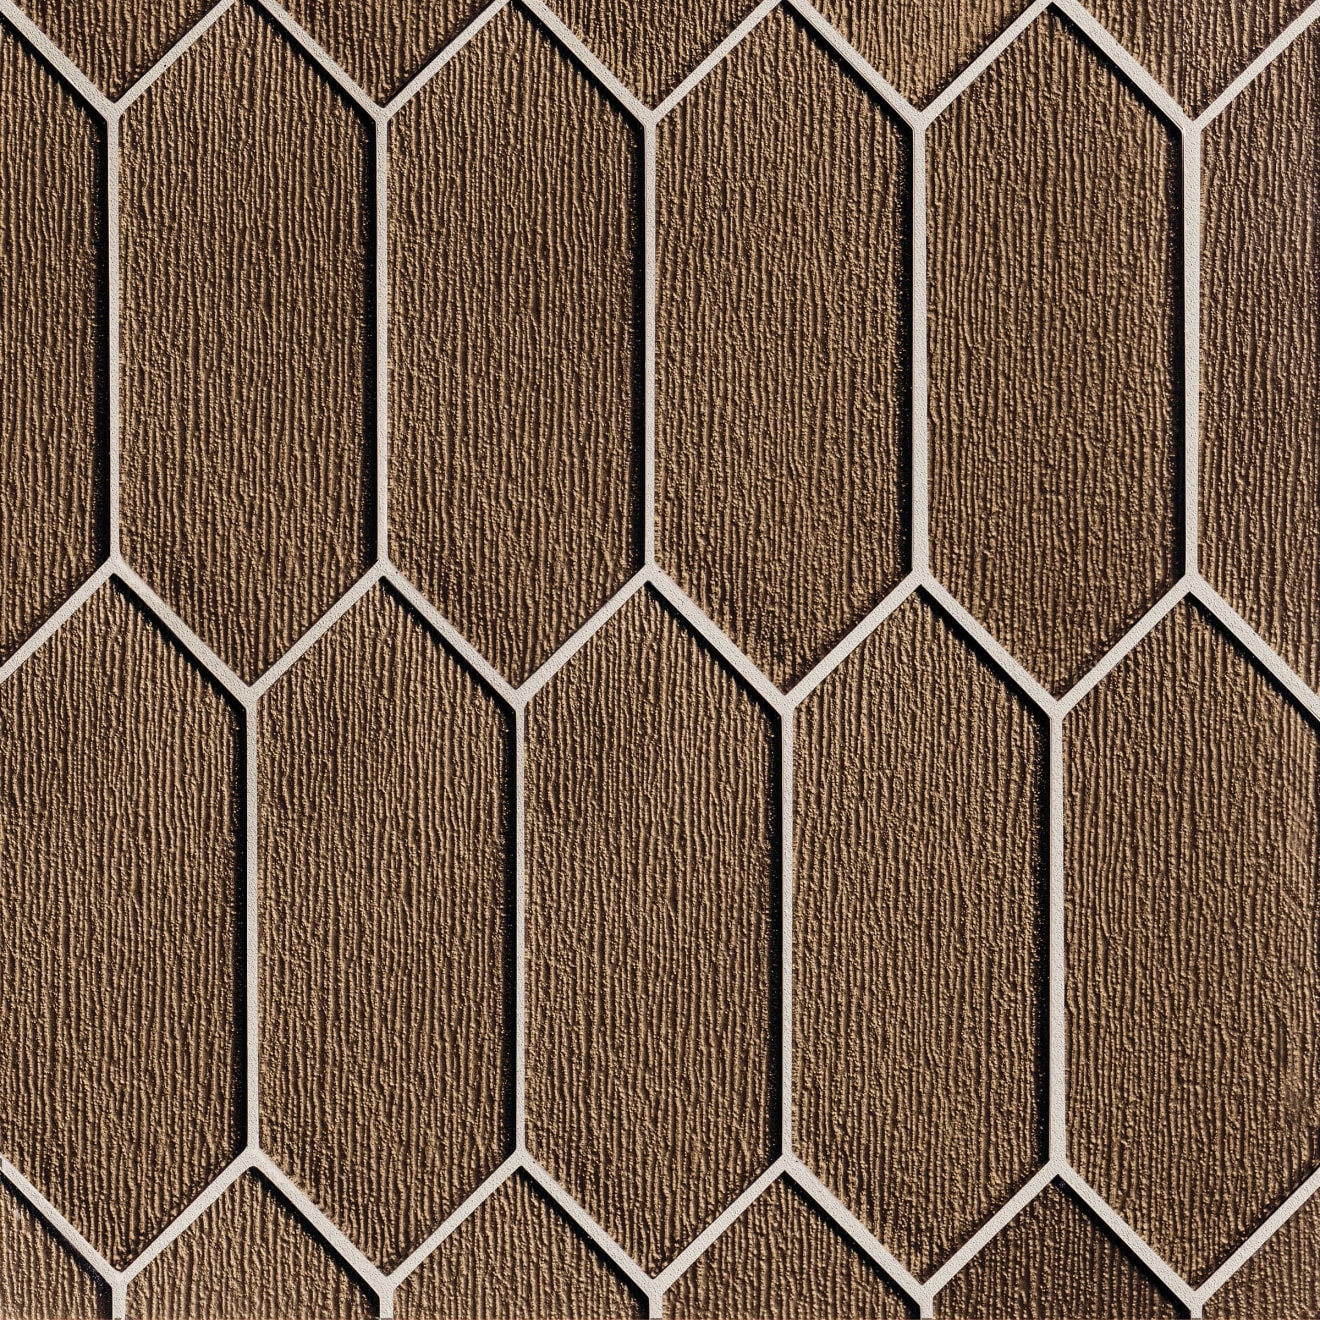 Verve Wall Mosaic in Gold Rush